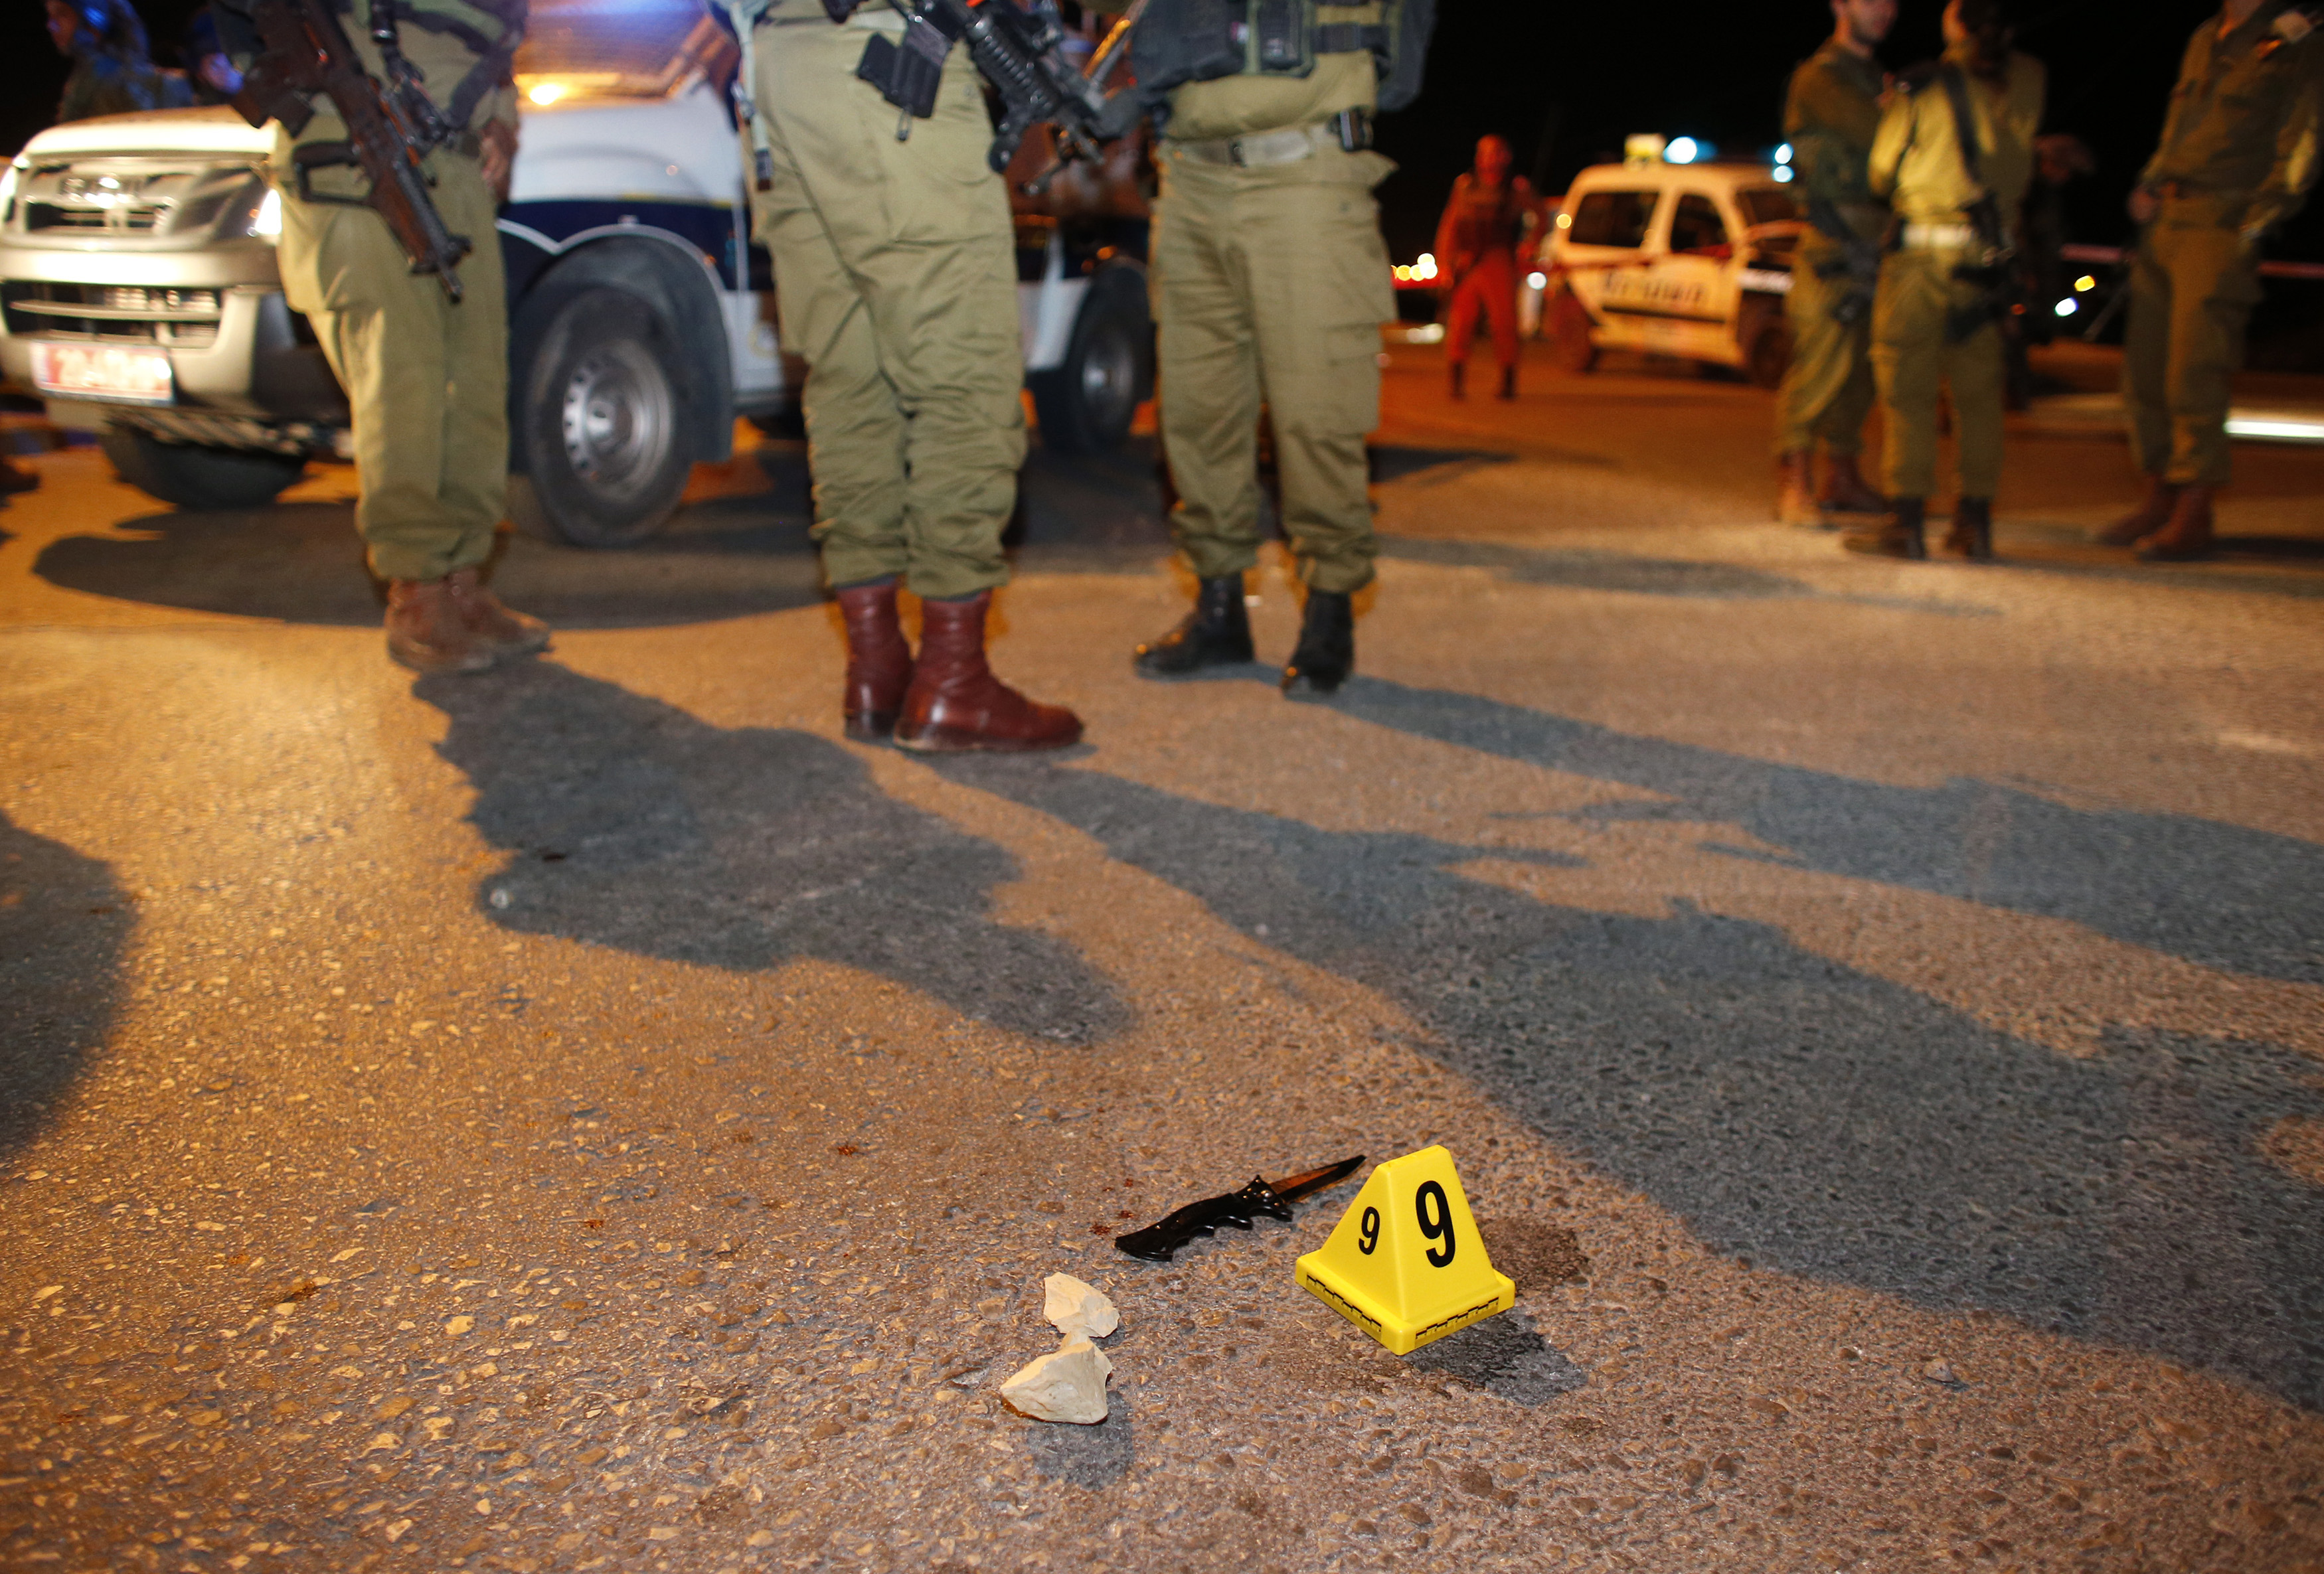 Israeli soldiers stand near a knife at the scene of a stabbing attack near the Jewish settlement of Alon Shvut in the West Bank on Nov. 10, 2014